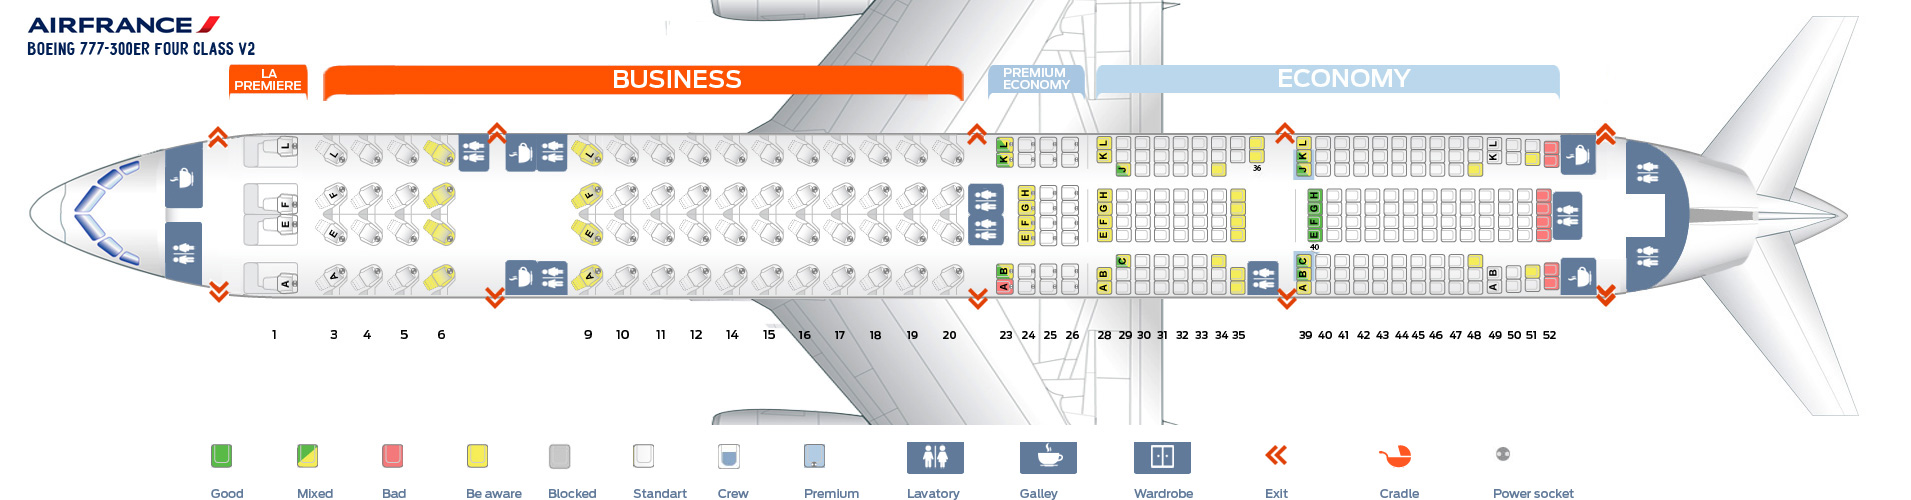 Seat Map Boeing 777-300 ER Four class V2 Air France